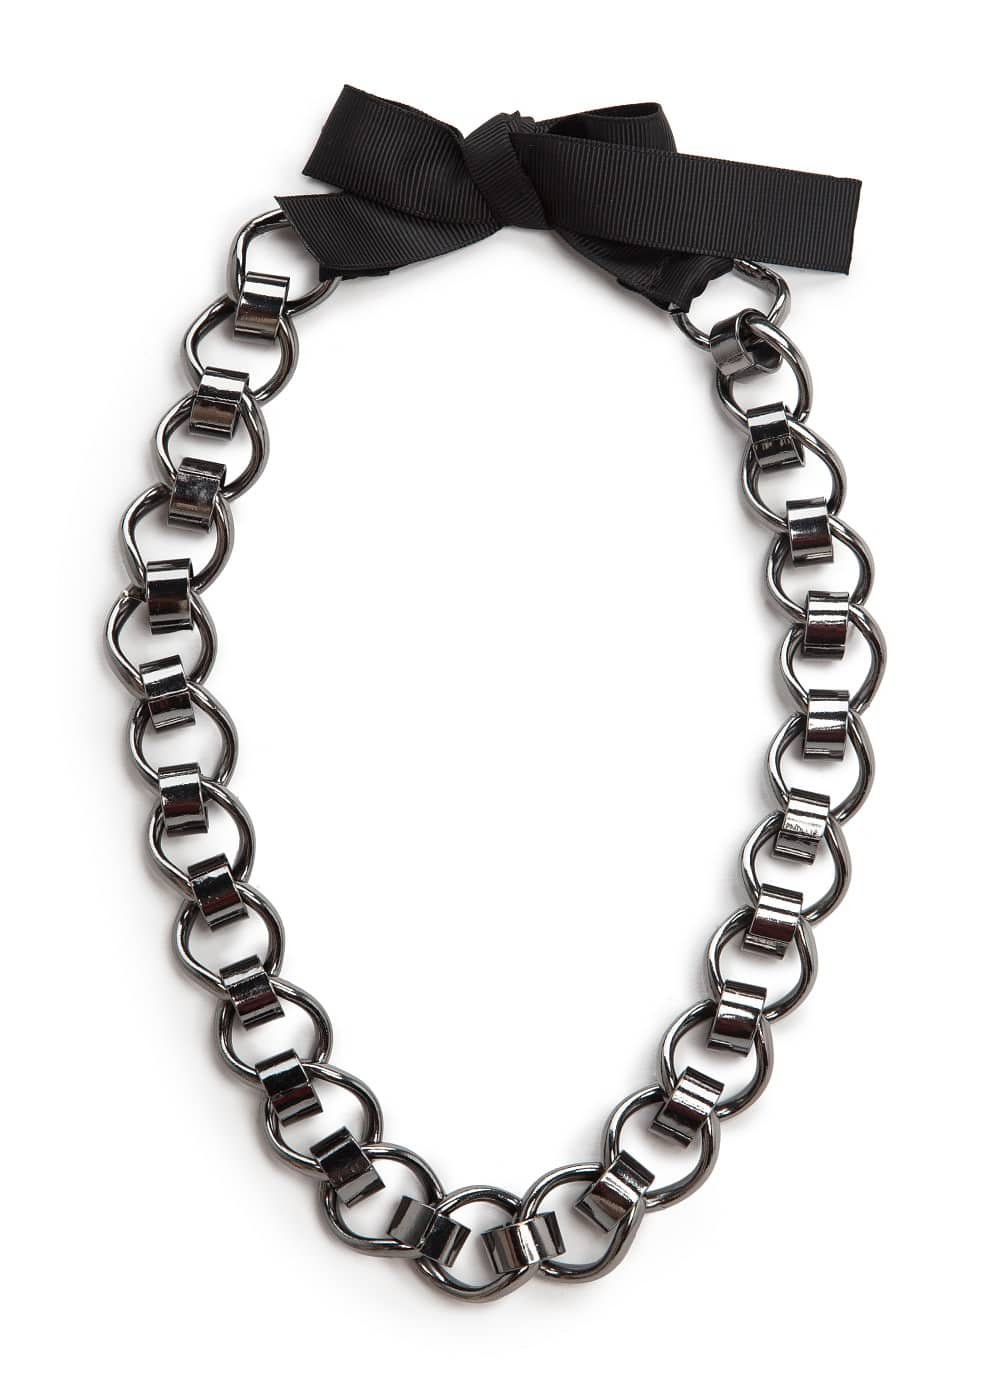 Linked chain choker